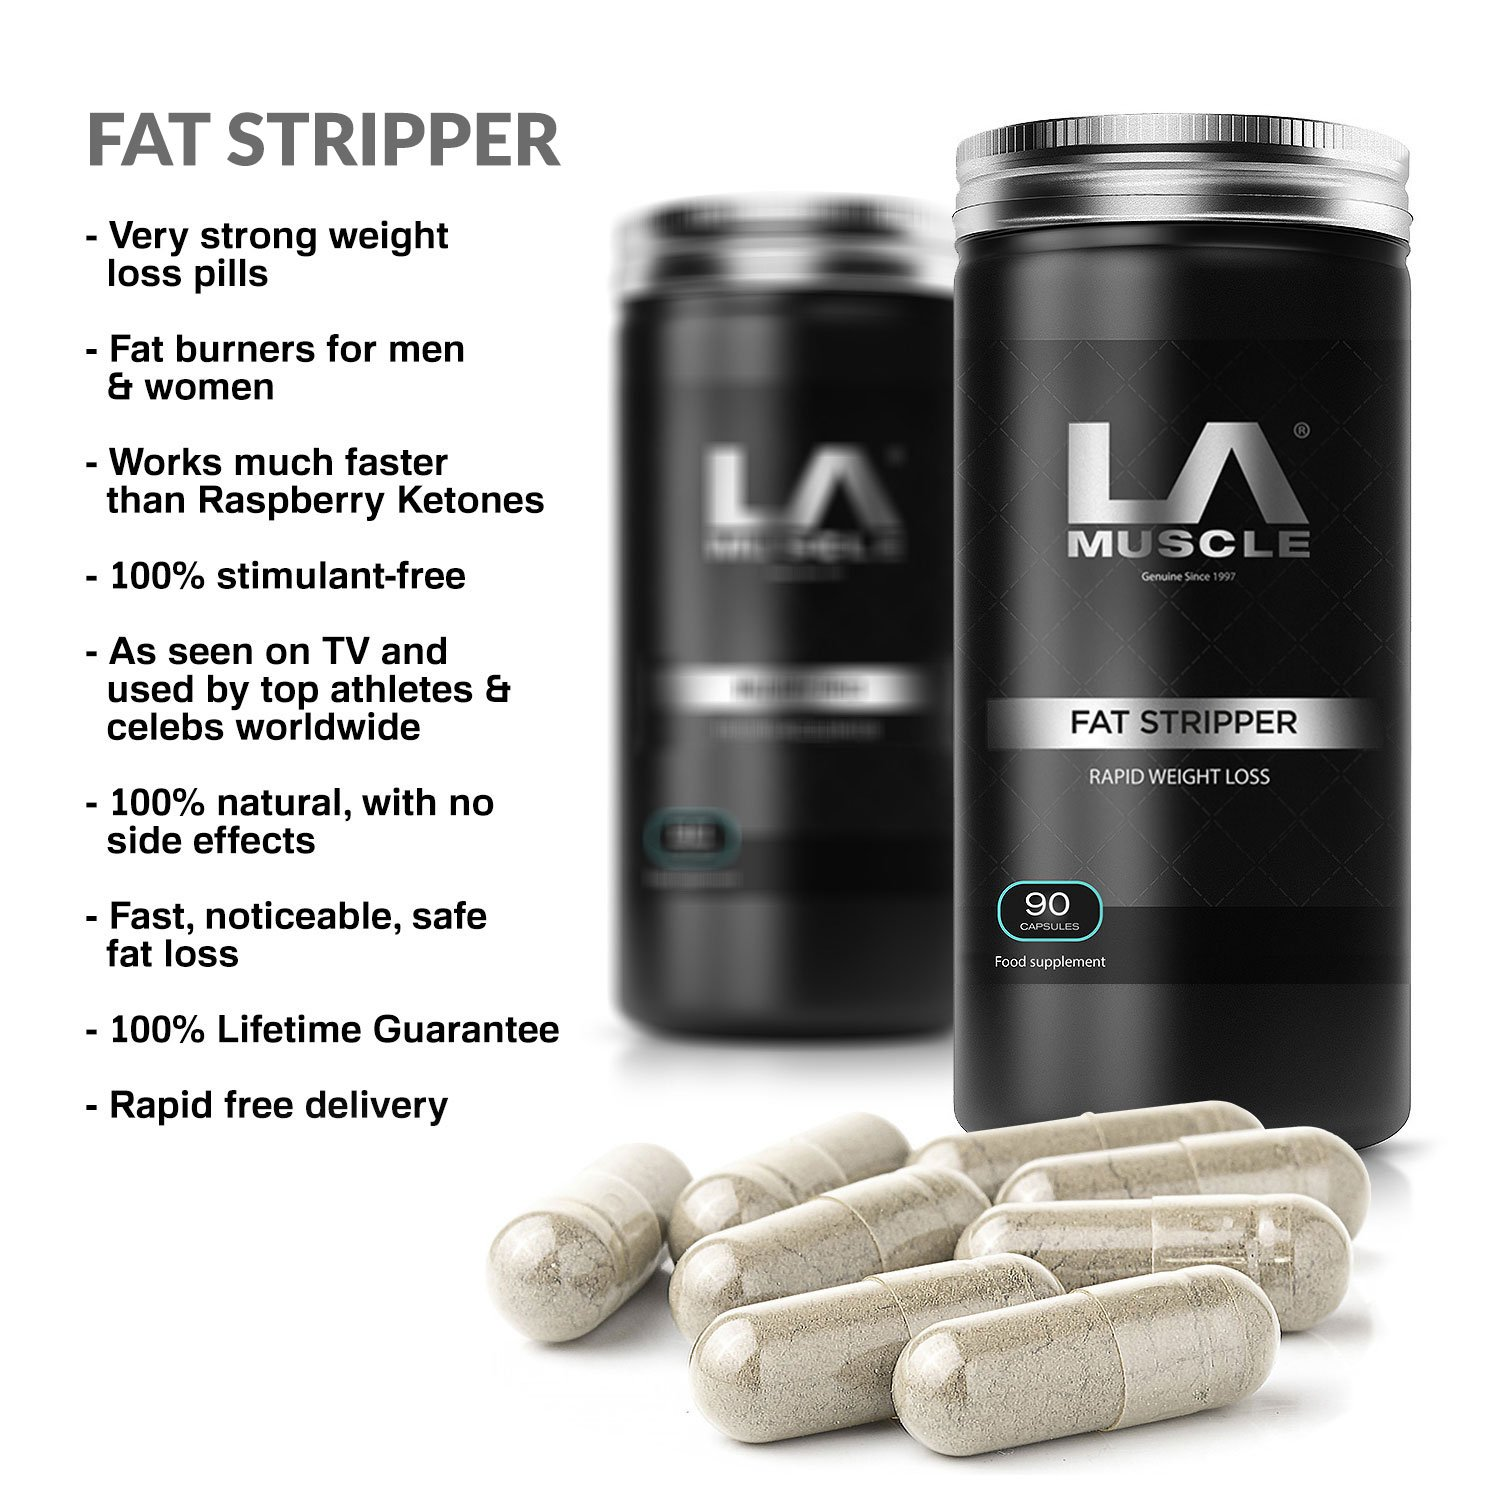 LA Muscle Fat Stripper : Very Strong Weight Loss Diet Pills Fat Burners for Men & Women (Works Much Faster Than Raspberry Ketones), No.1 Slimming Supplement Lose Weight Fast and Easy.